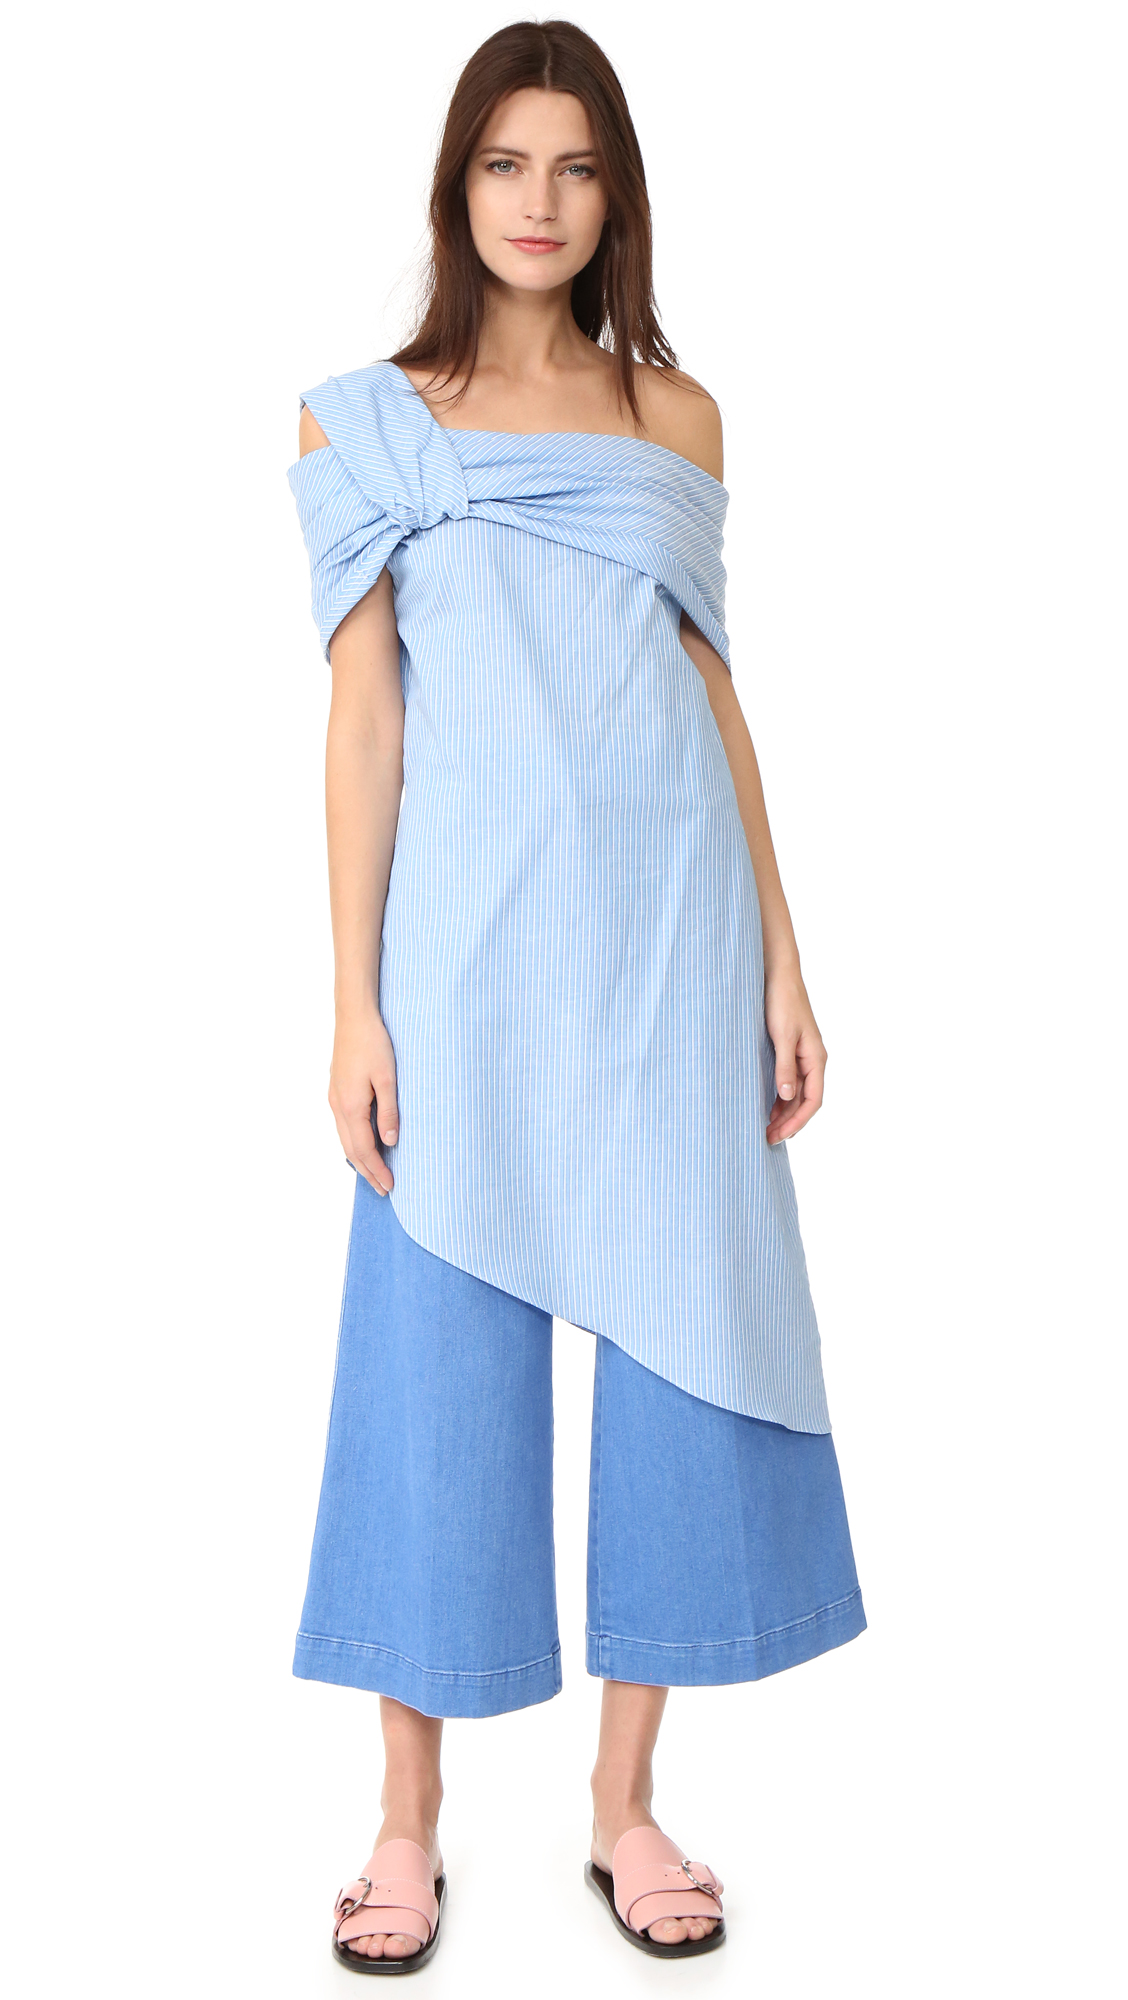 Baja East One Shoulder Dress - Malibu Blue